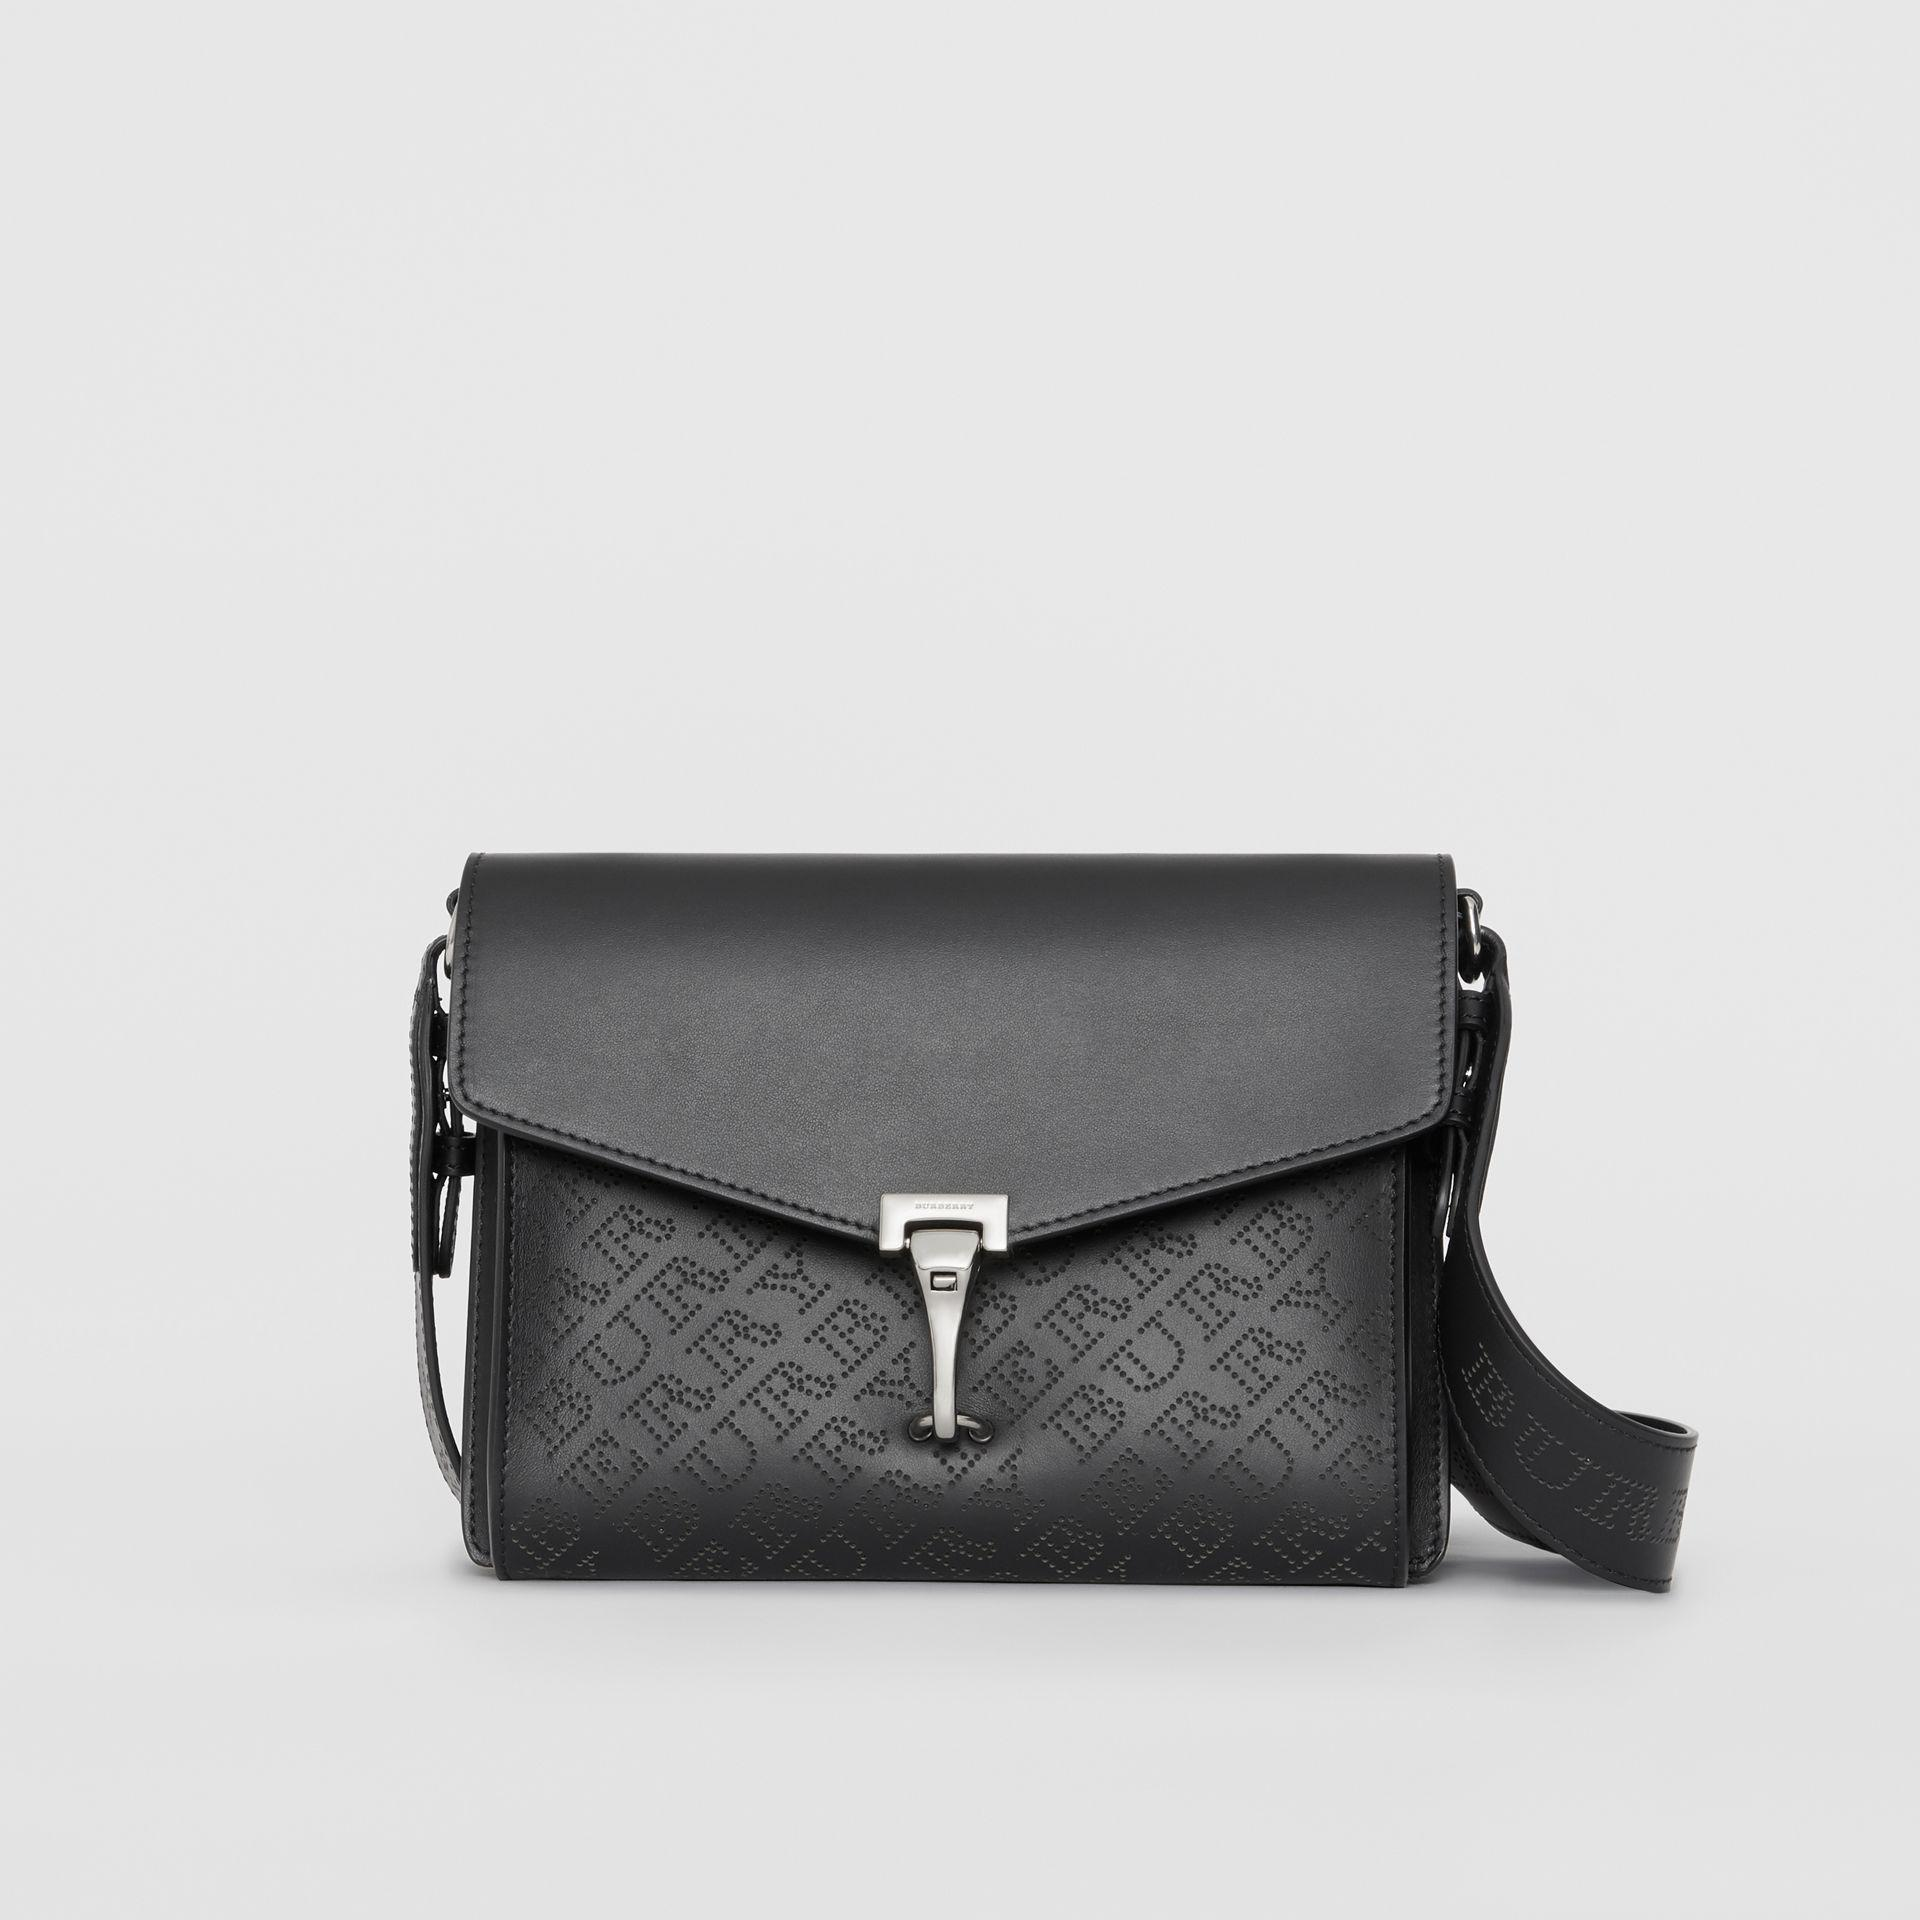 e5a83fd394ae Lyst - Burberry Small Perforated Logo Leather Crossbody Bag in Black